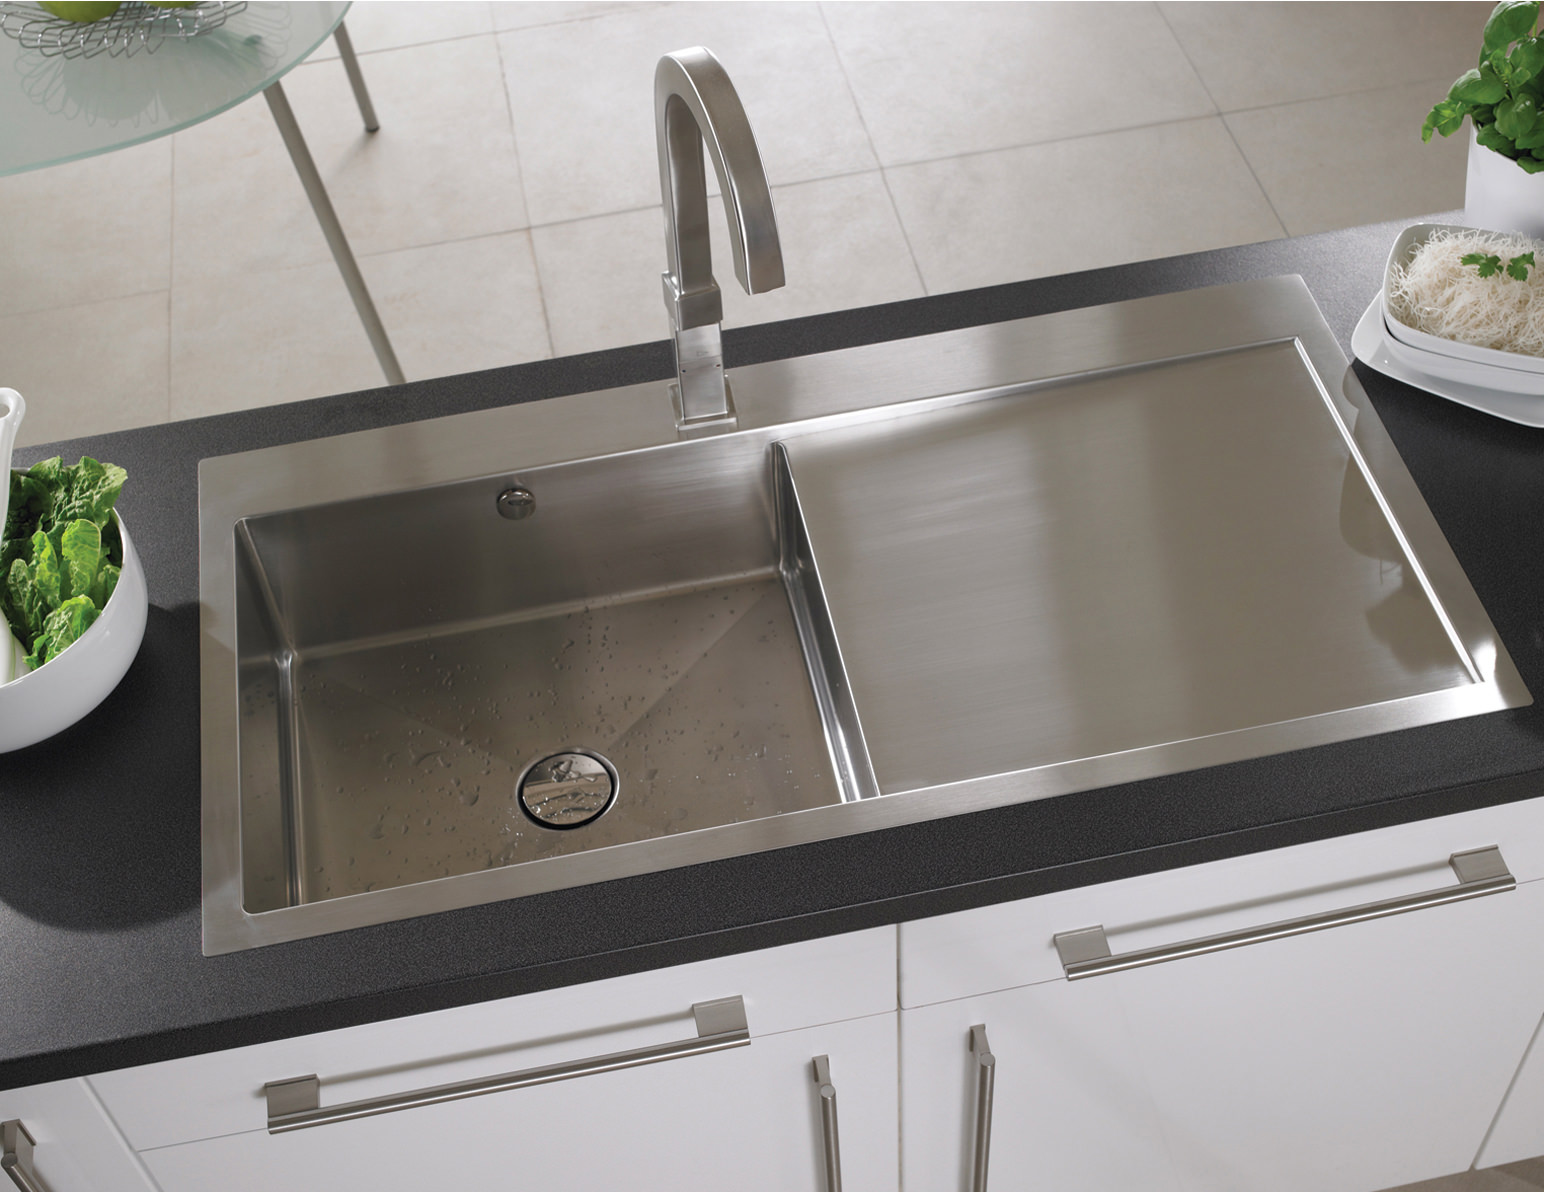 Best Stainless Steel Sinks Uk : ... Vantage 1.0 Bowl Brushed Stainless Steel Inset Sink And Tap Pack